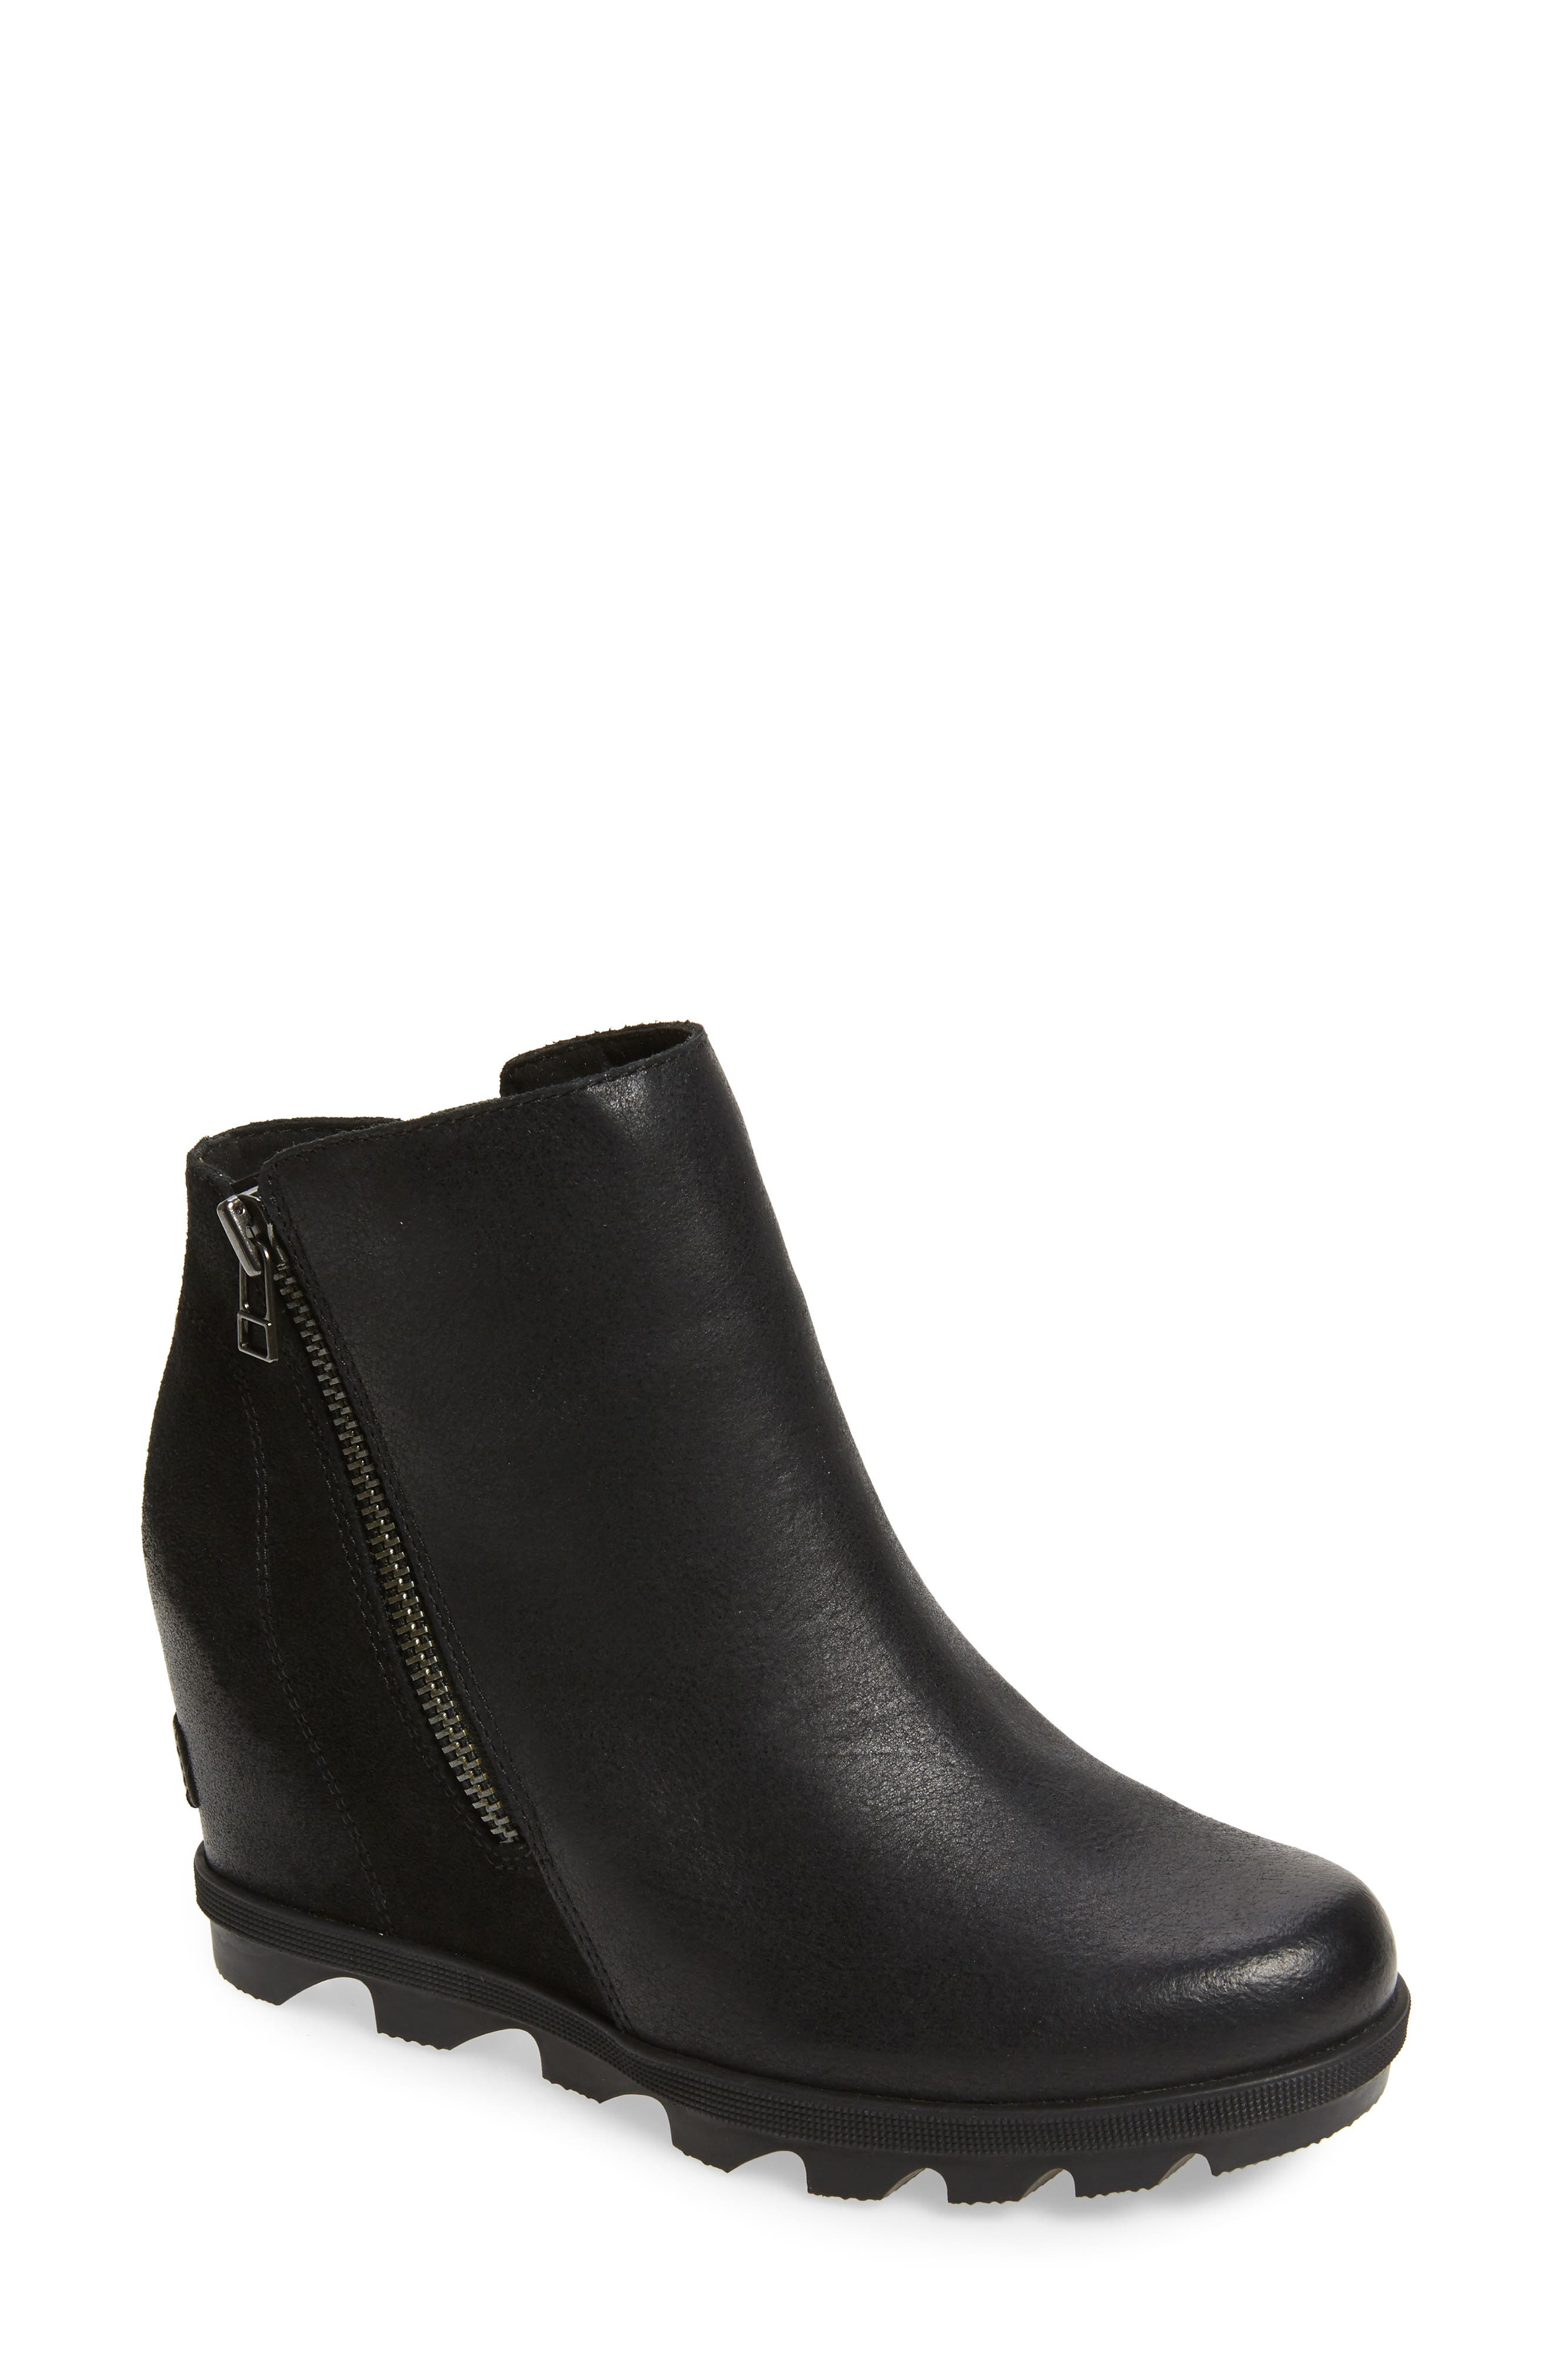 nordstrom lace up booties